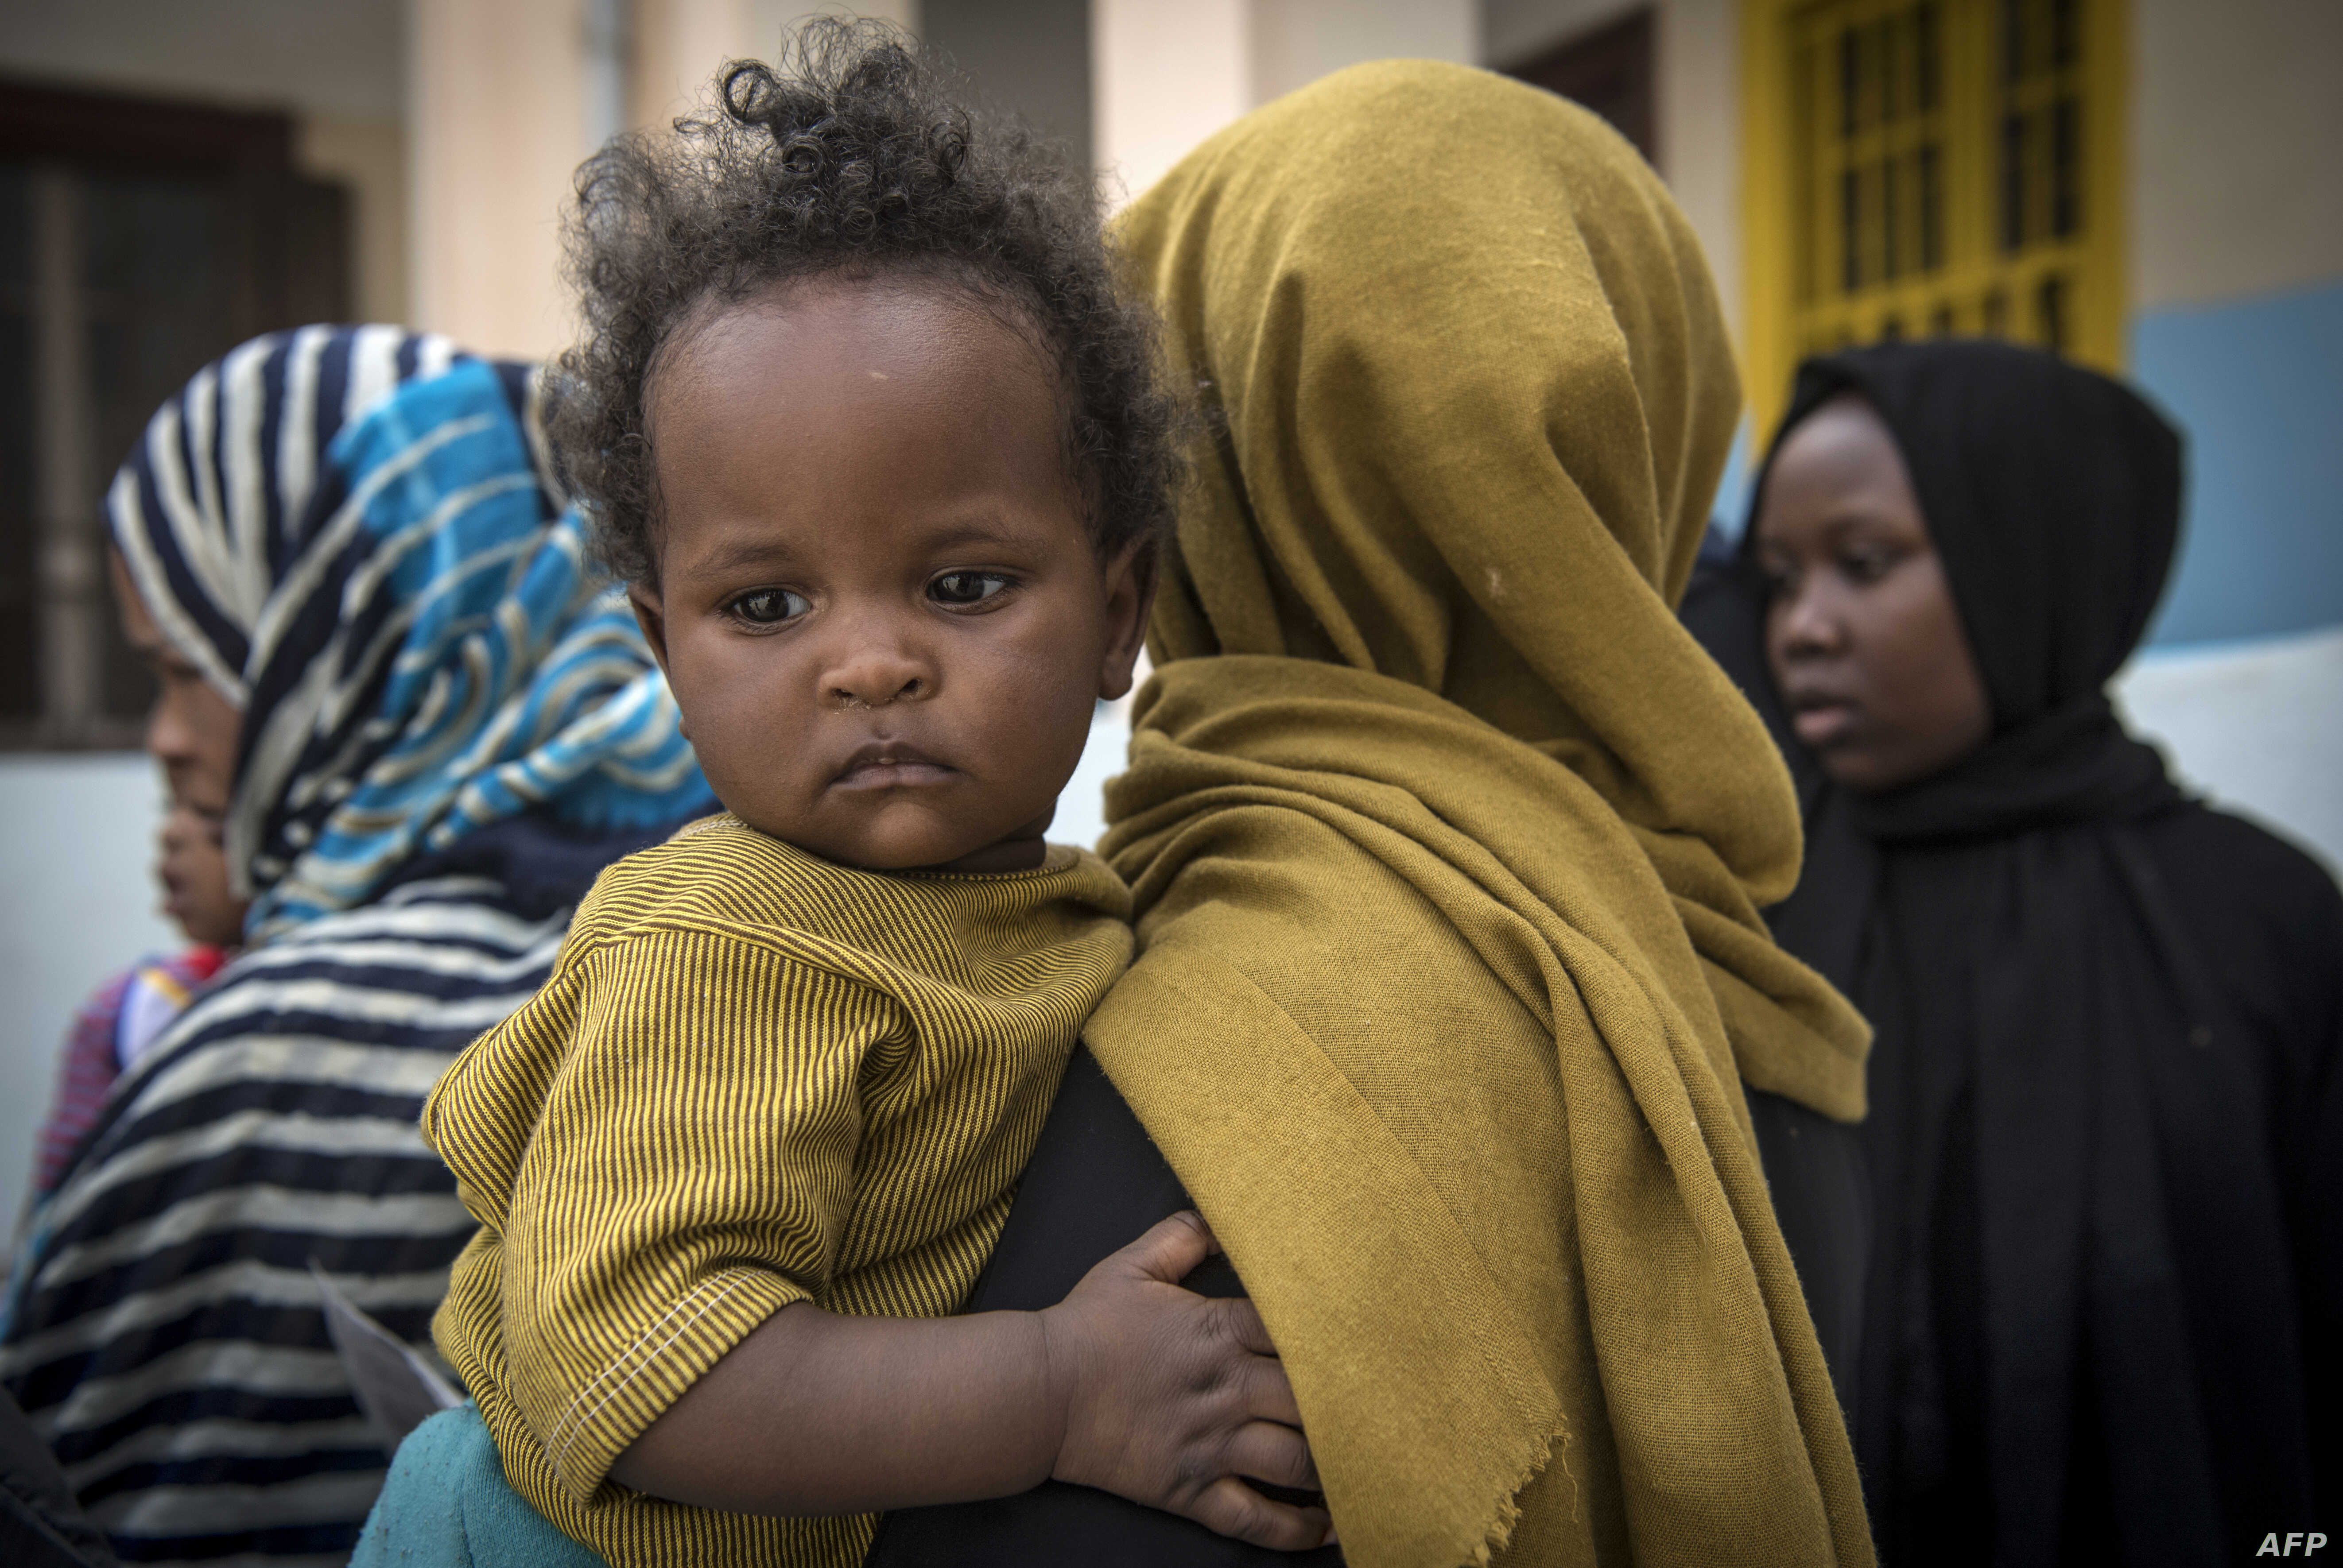 Sudanese refugees, who fled from the clashes between forces loyal to the internationally recognized Government of National Accord and forces loyal to strongman Khalifa Haftar, rest at a school in Libya's capital, Tripoli, on April 24, 2019.